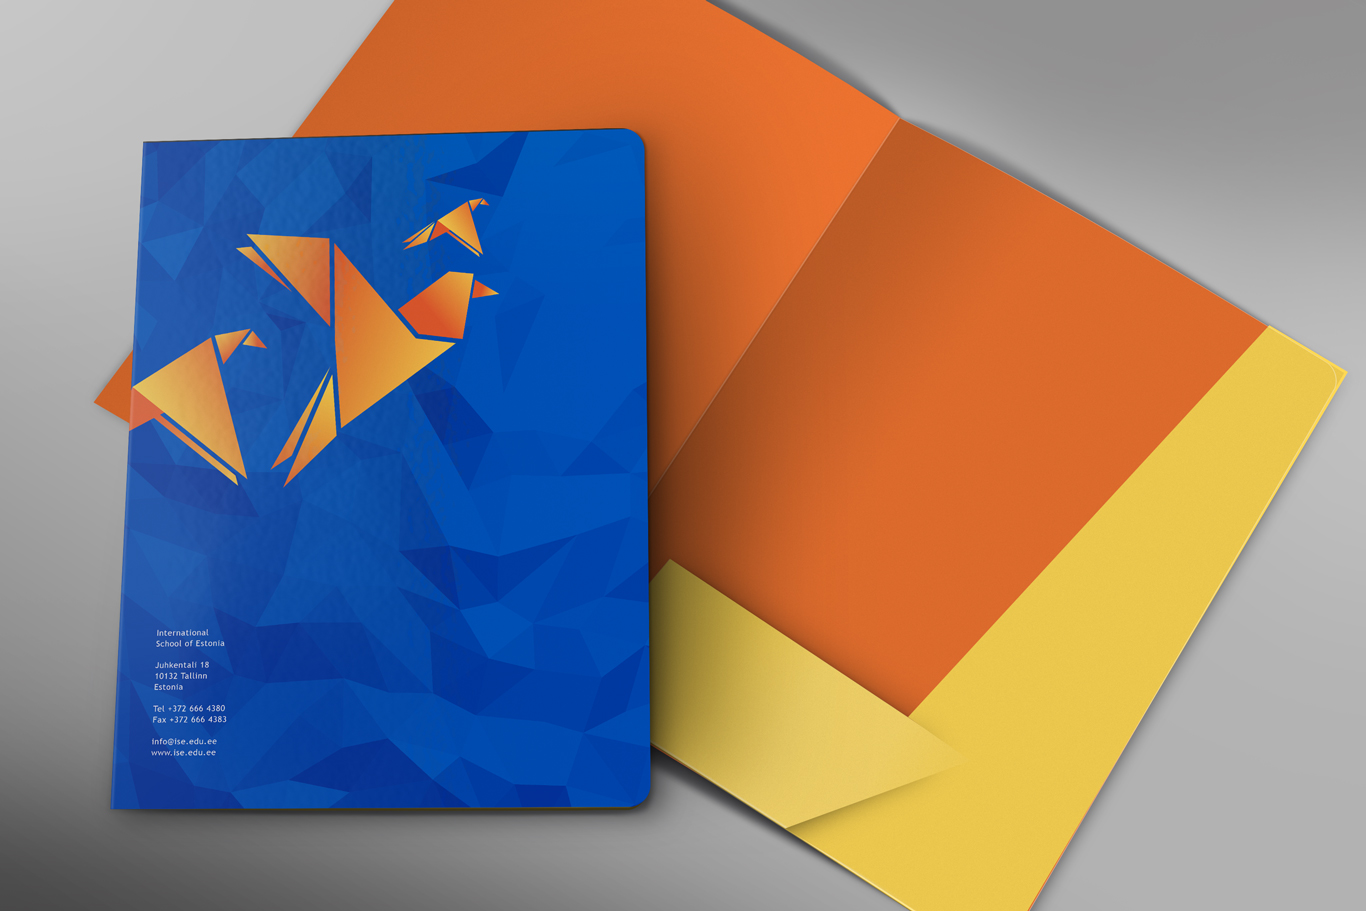 ise-Front-and-Inside-Folder-Mockup-PSD-Template